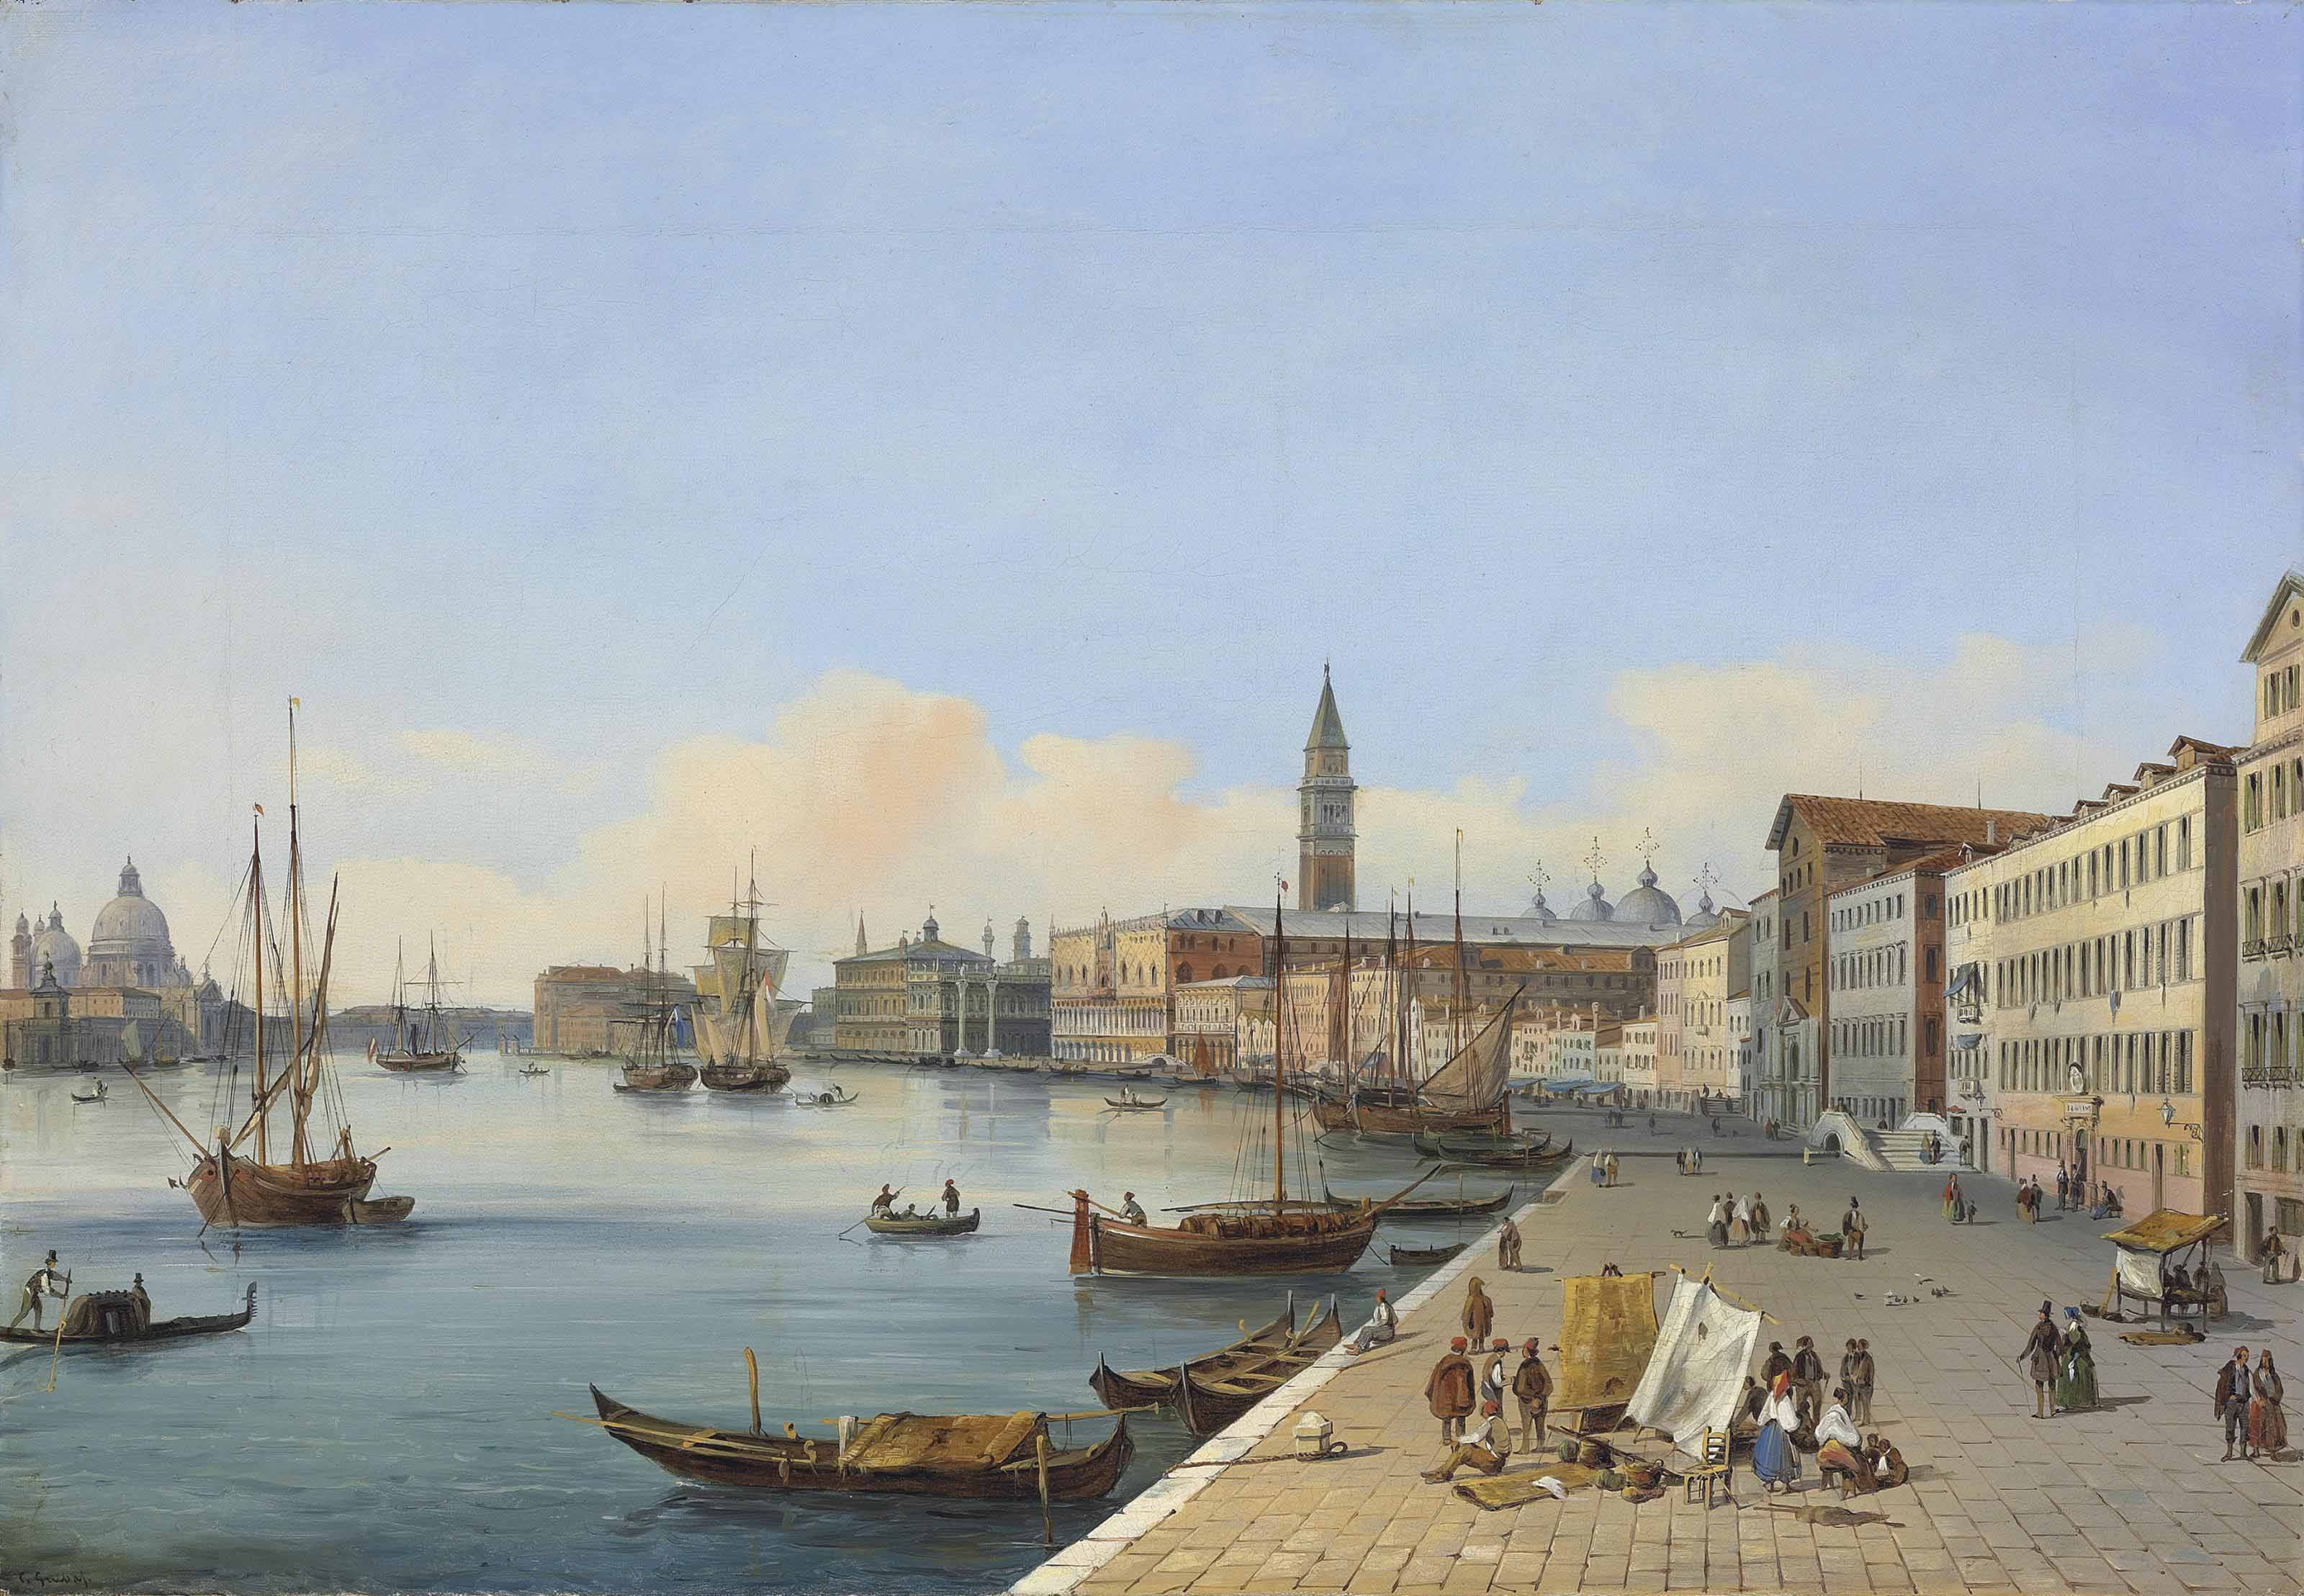 Riva degli Schiavoni towards the Dogana, Venice